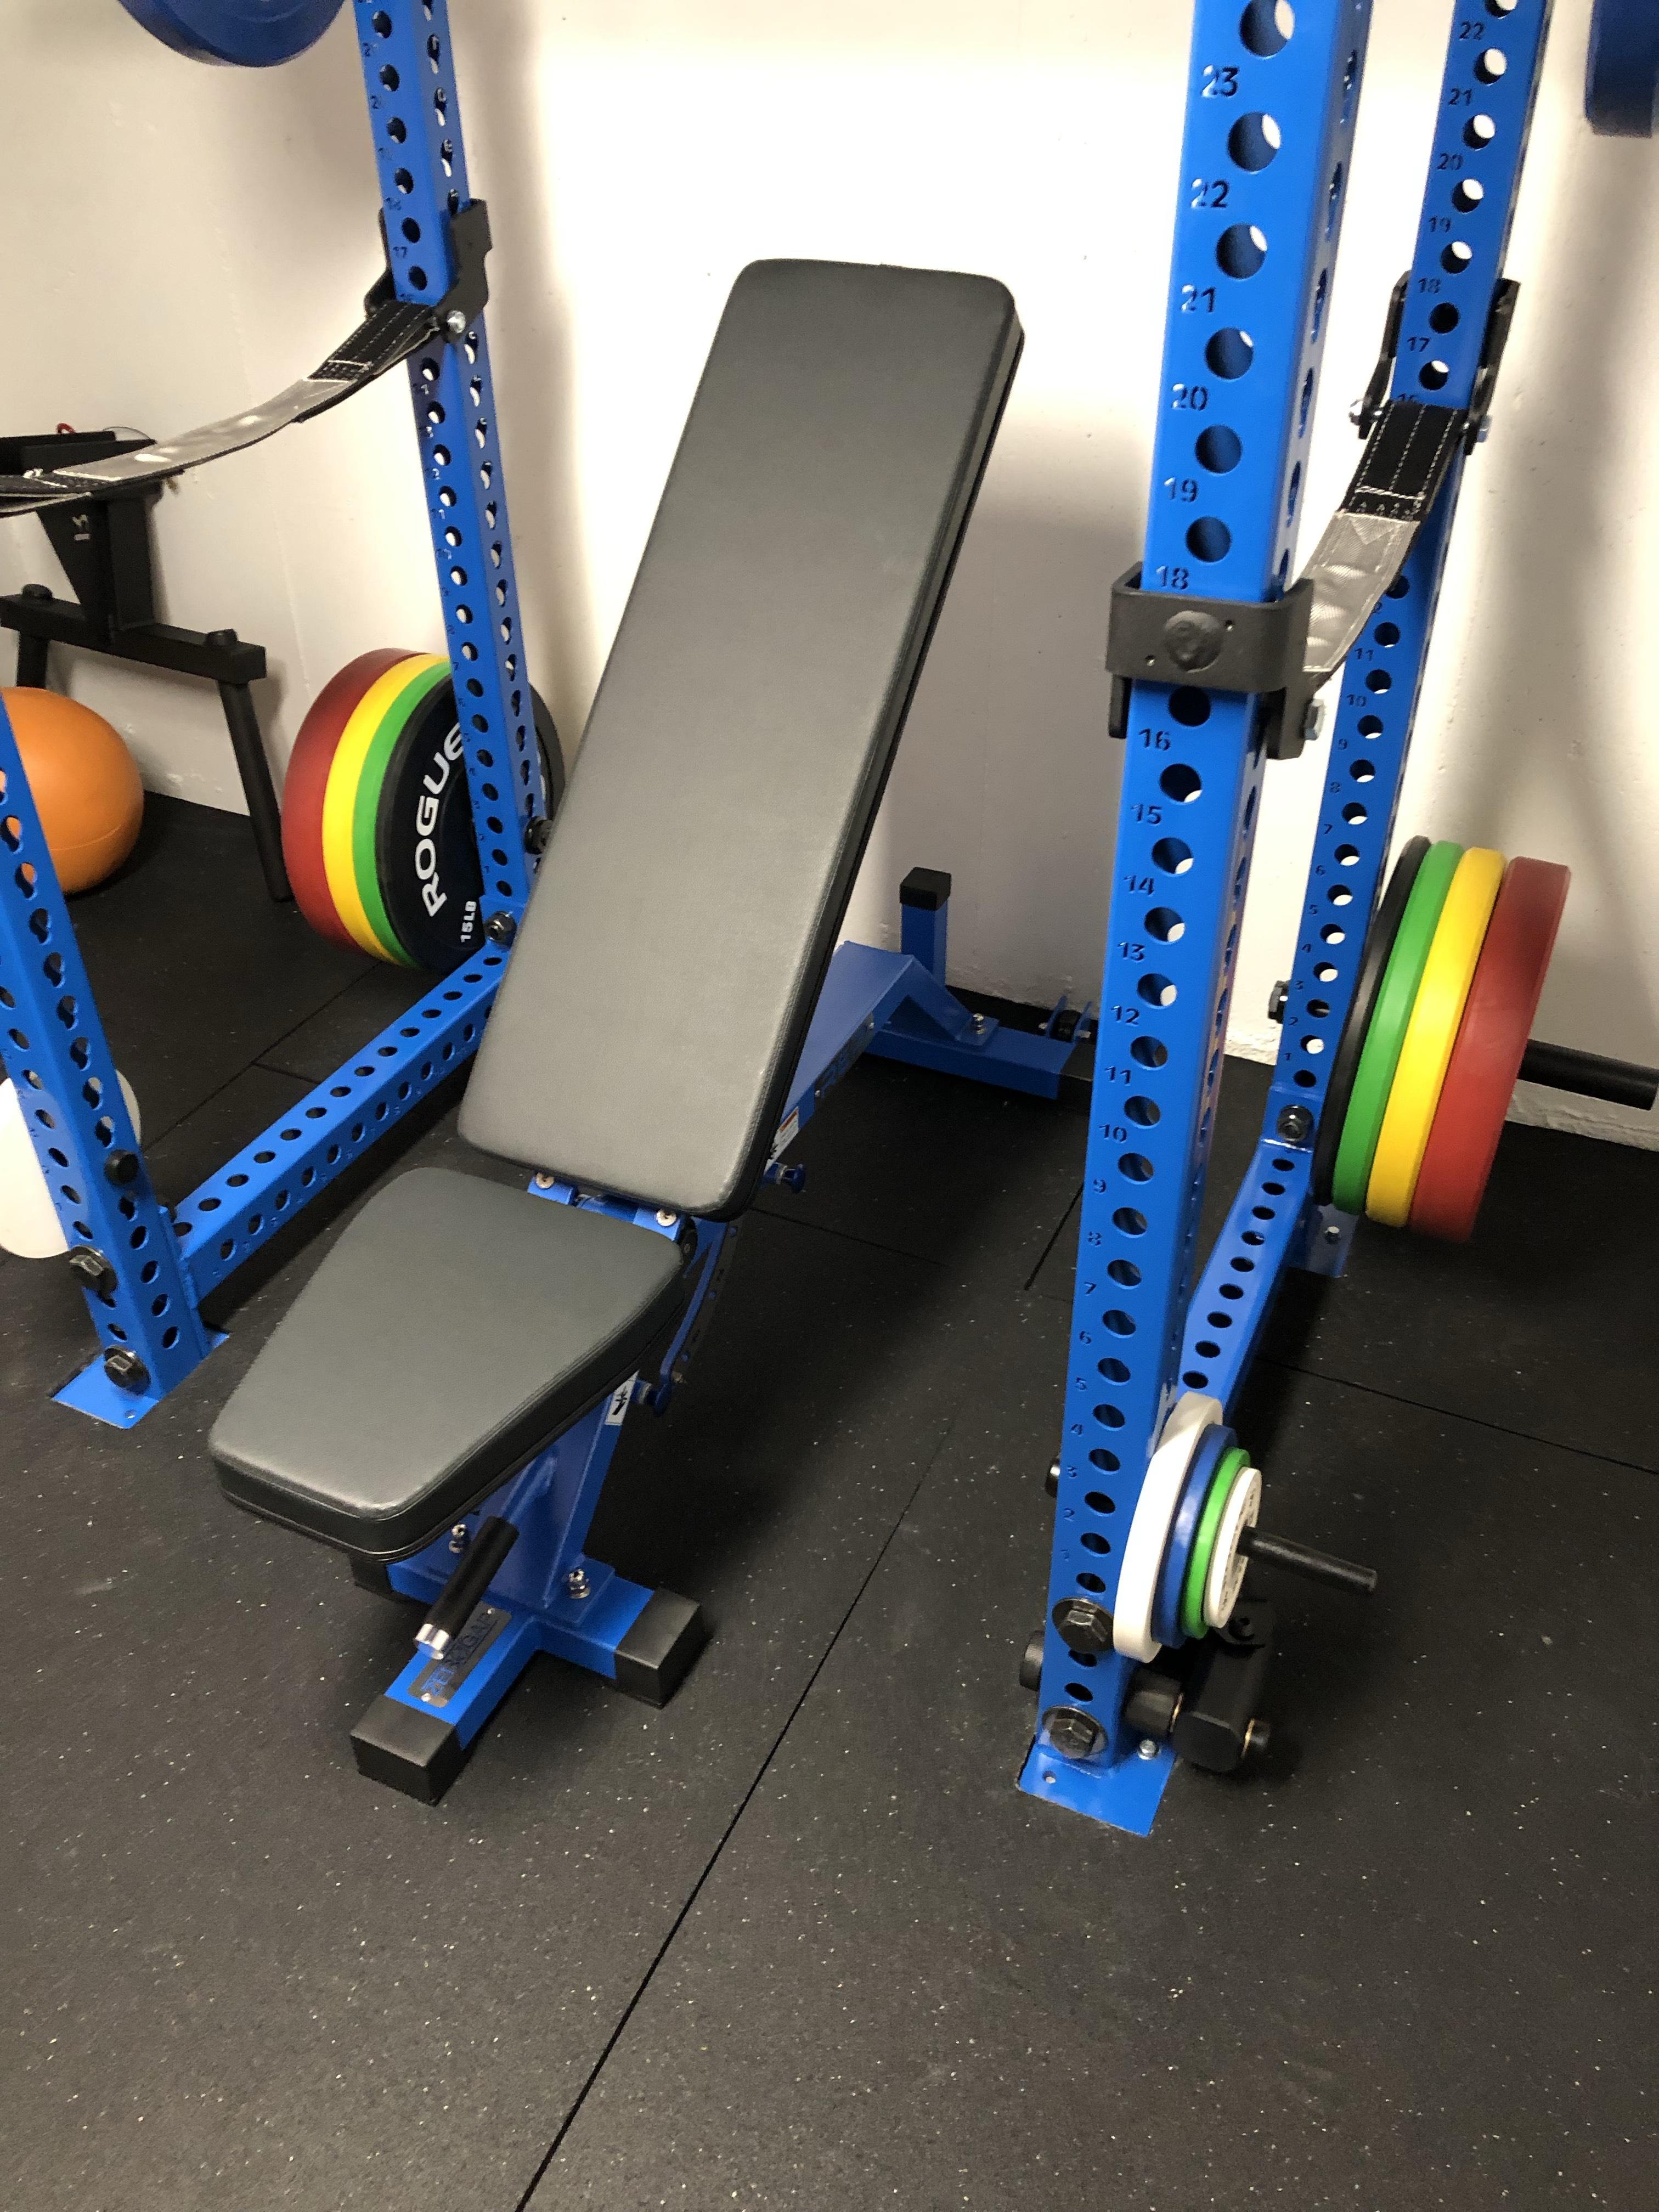 Rep Fitness Ab 5000 : fitness, AB-5000, Finally, Arrived, Homegym